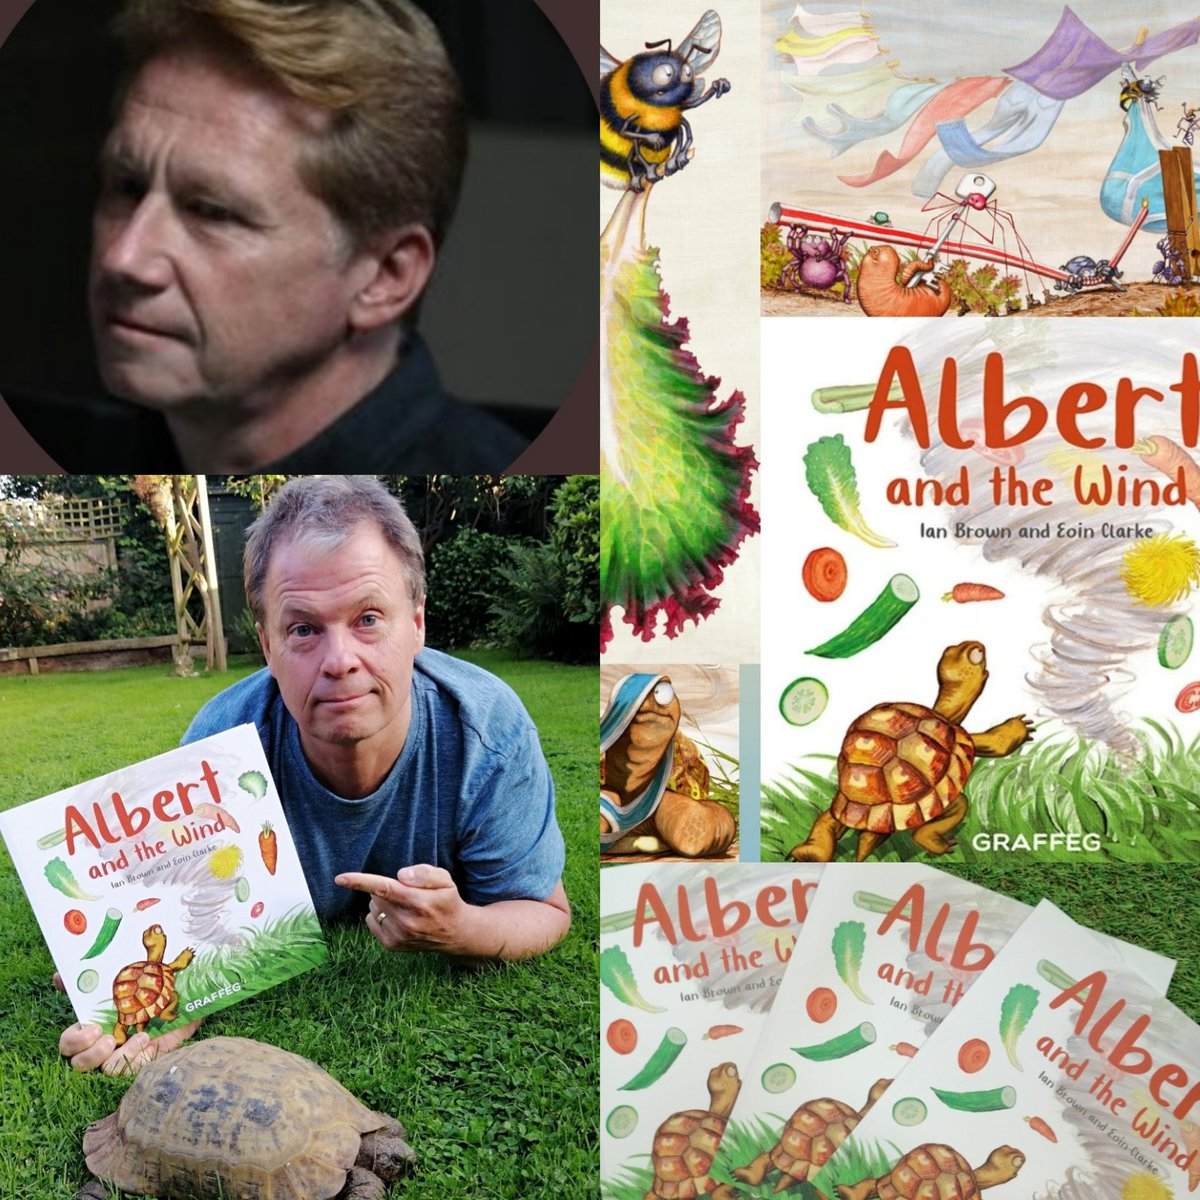 Smashing chat with @SimonParkinTV @bbcsomerset - #thankyou - all about #ALBERTthetortoise and the launch of NEW #picturebook ALBERT AND THE WIND - more at https://t.co/Olqfb5dRZA   #tortoise #radio #interview #somerset #turtle #childrensbooks #illustration #newbook https://t.co/UI982FQKeW